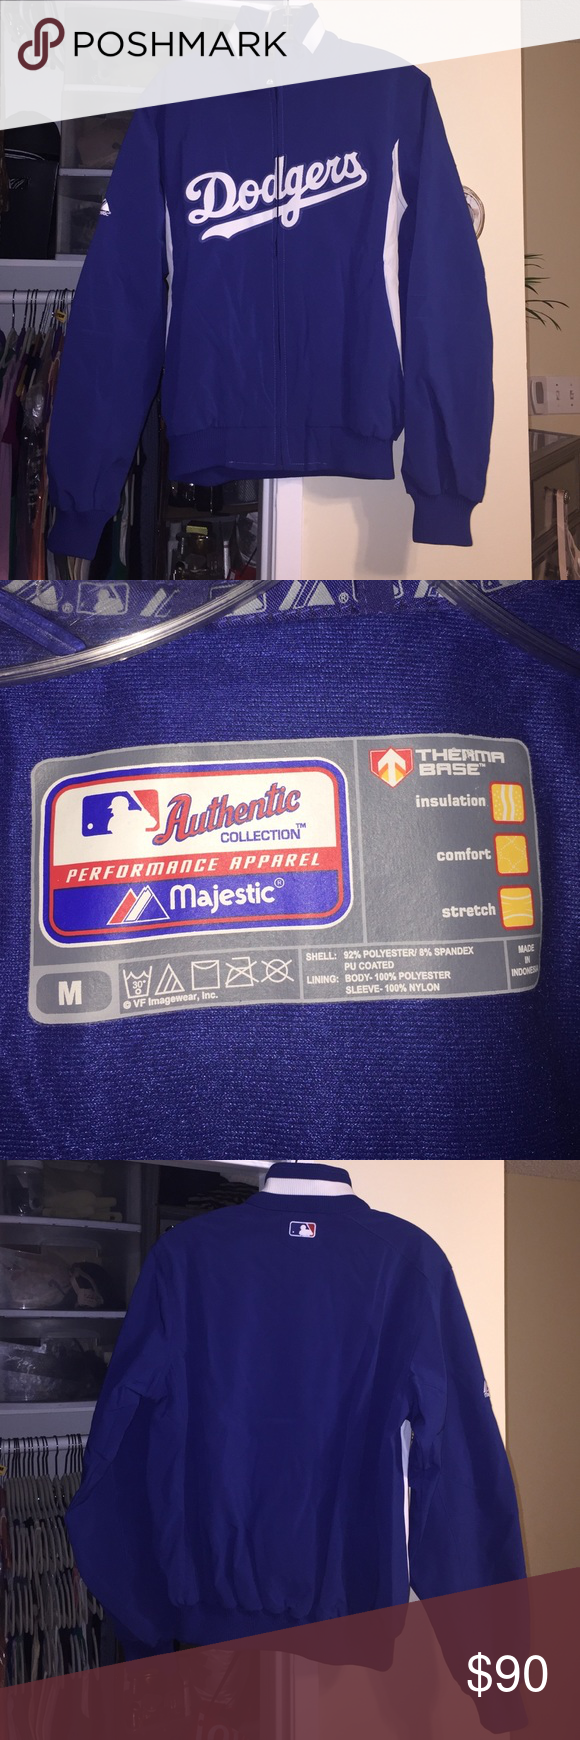 Authentic LA Dodgers Jacket My ex bought this for me at an LA Dodgers game. I wore it once. It is like new. It fits true to size. Thanks for your interest! Authentic Collection  Jackets & Coats